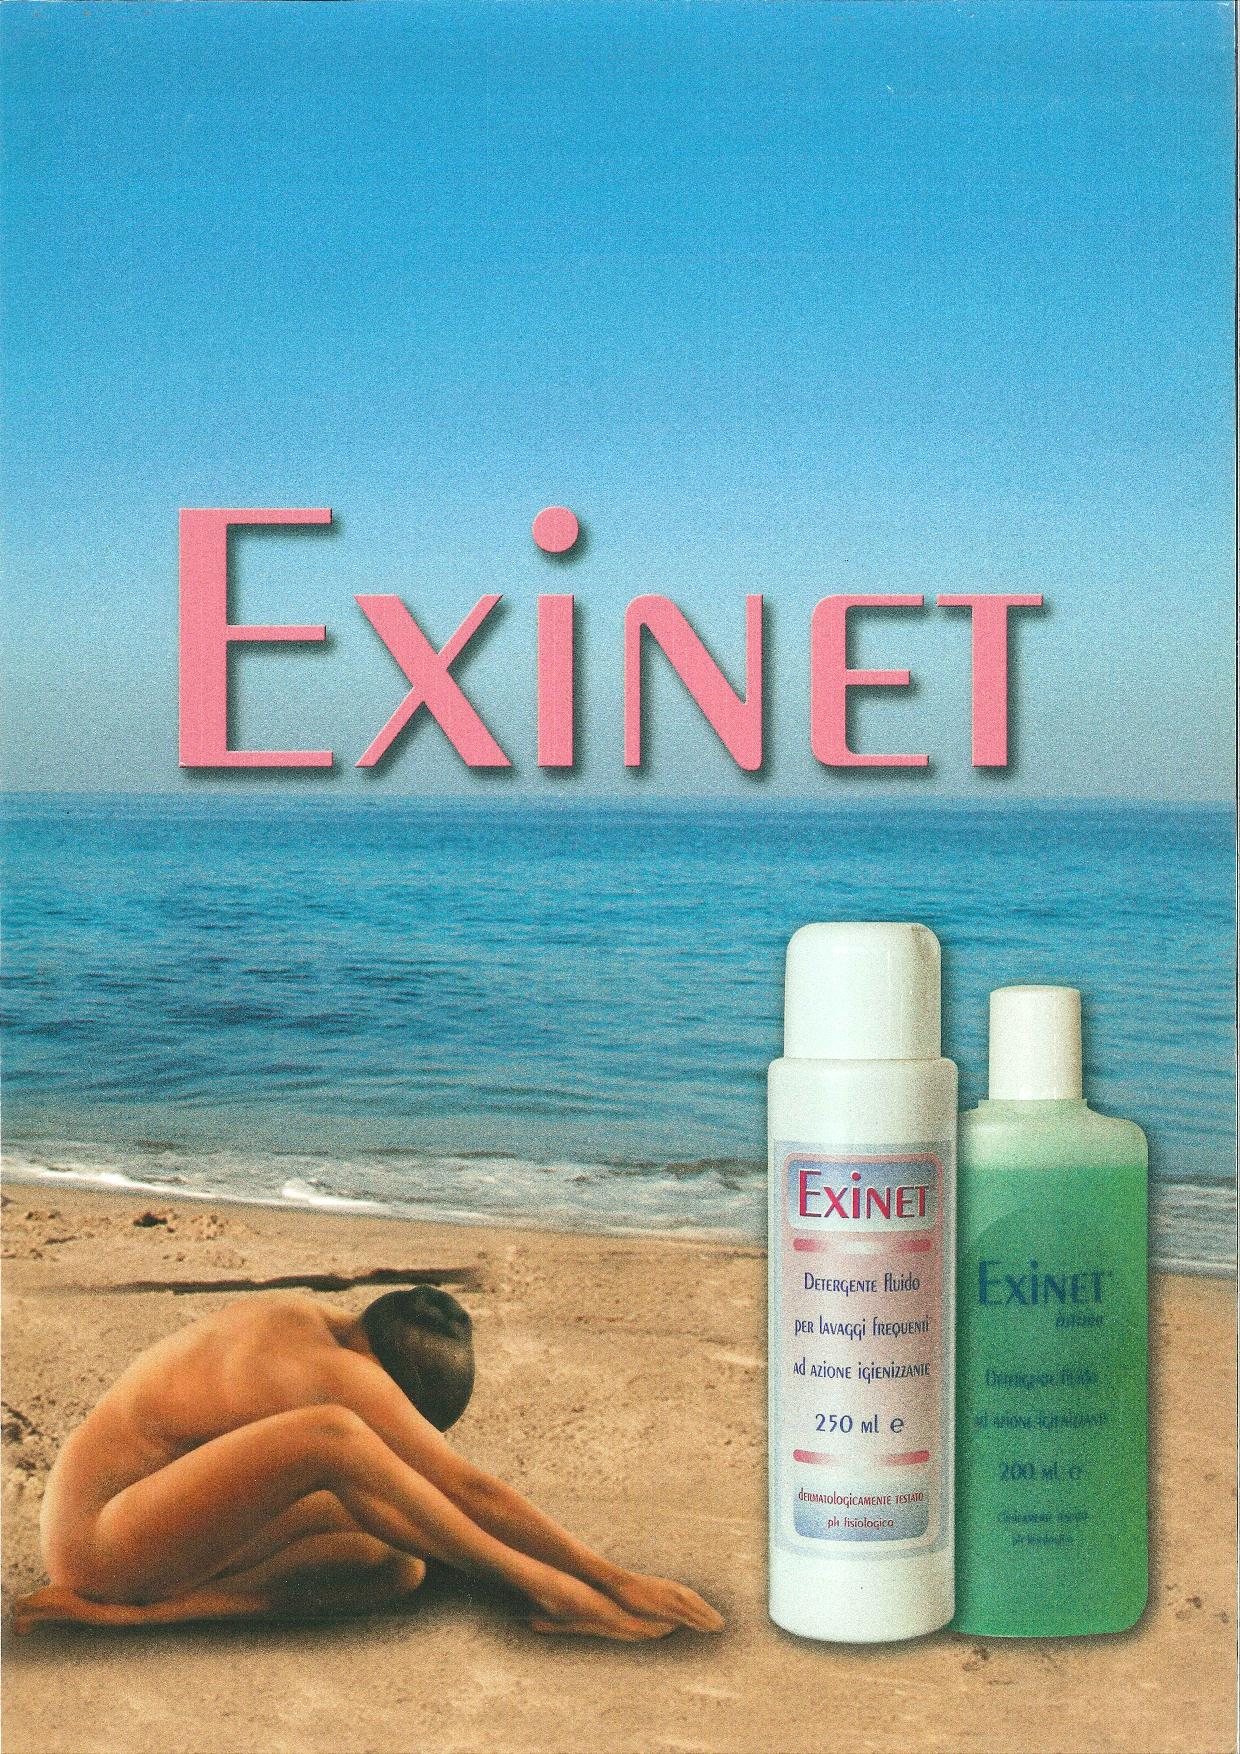 Exinet intimo-page-001